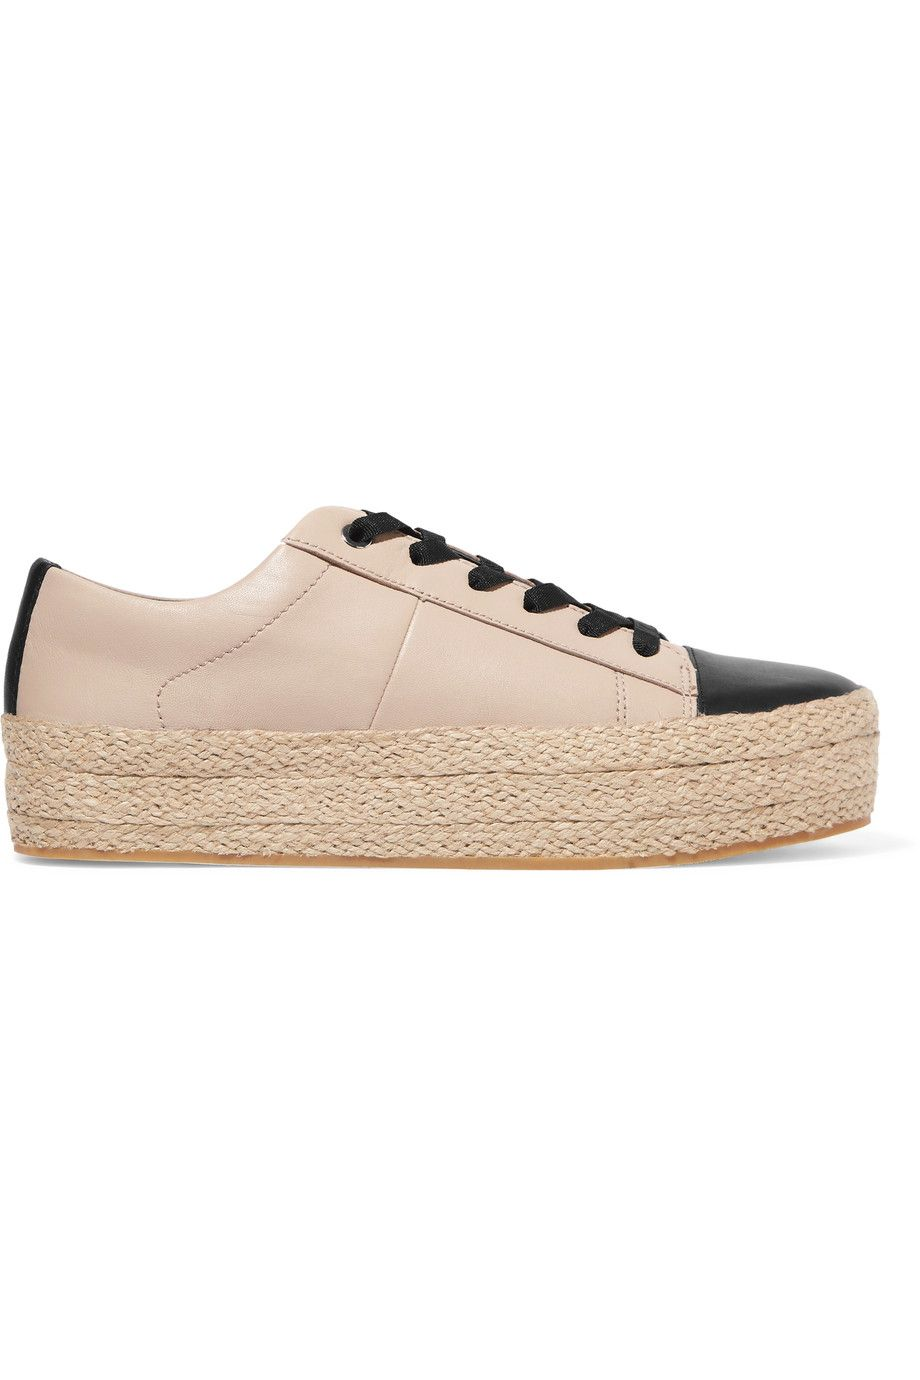 655251aa86d DKNY Bari leather platform sneakers.  dkny  shoes  sneakers